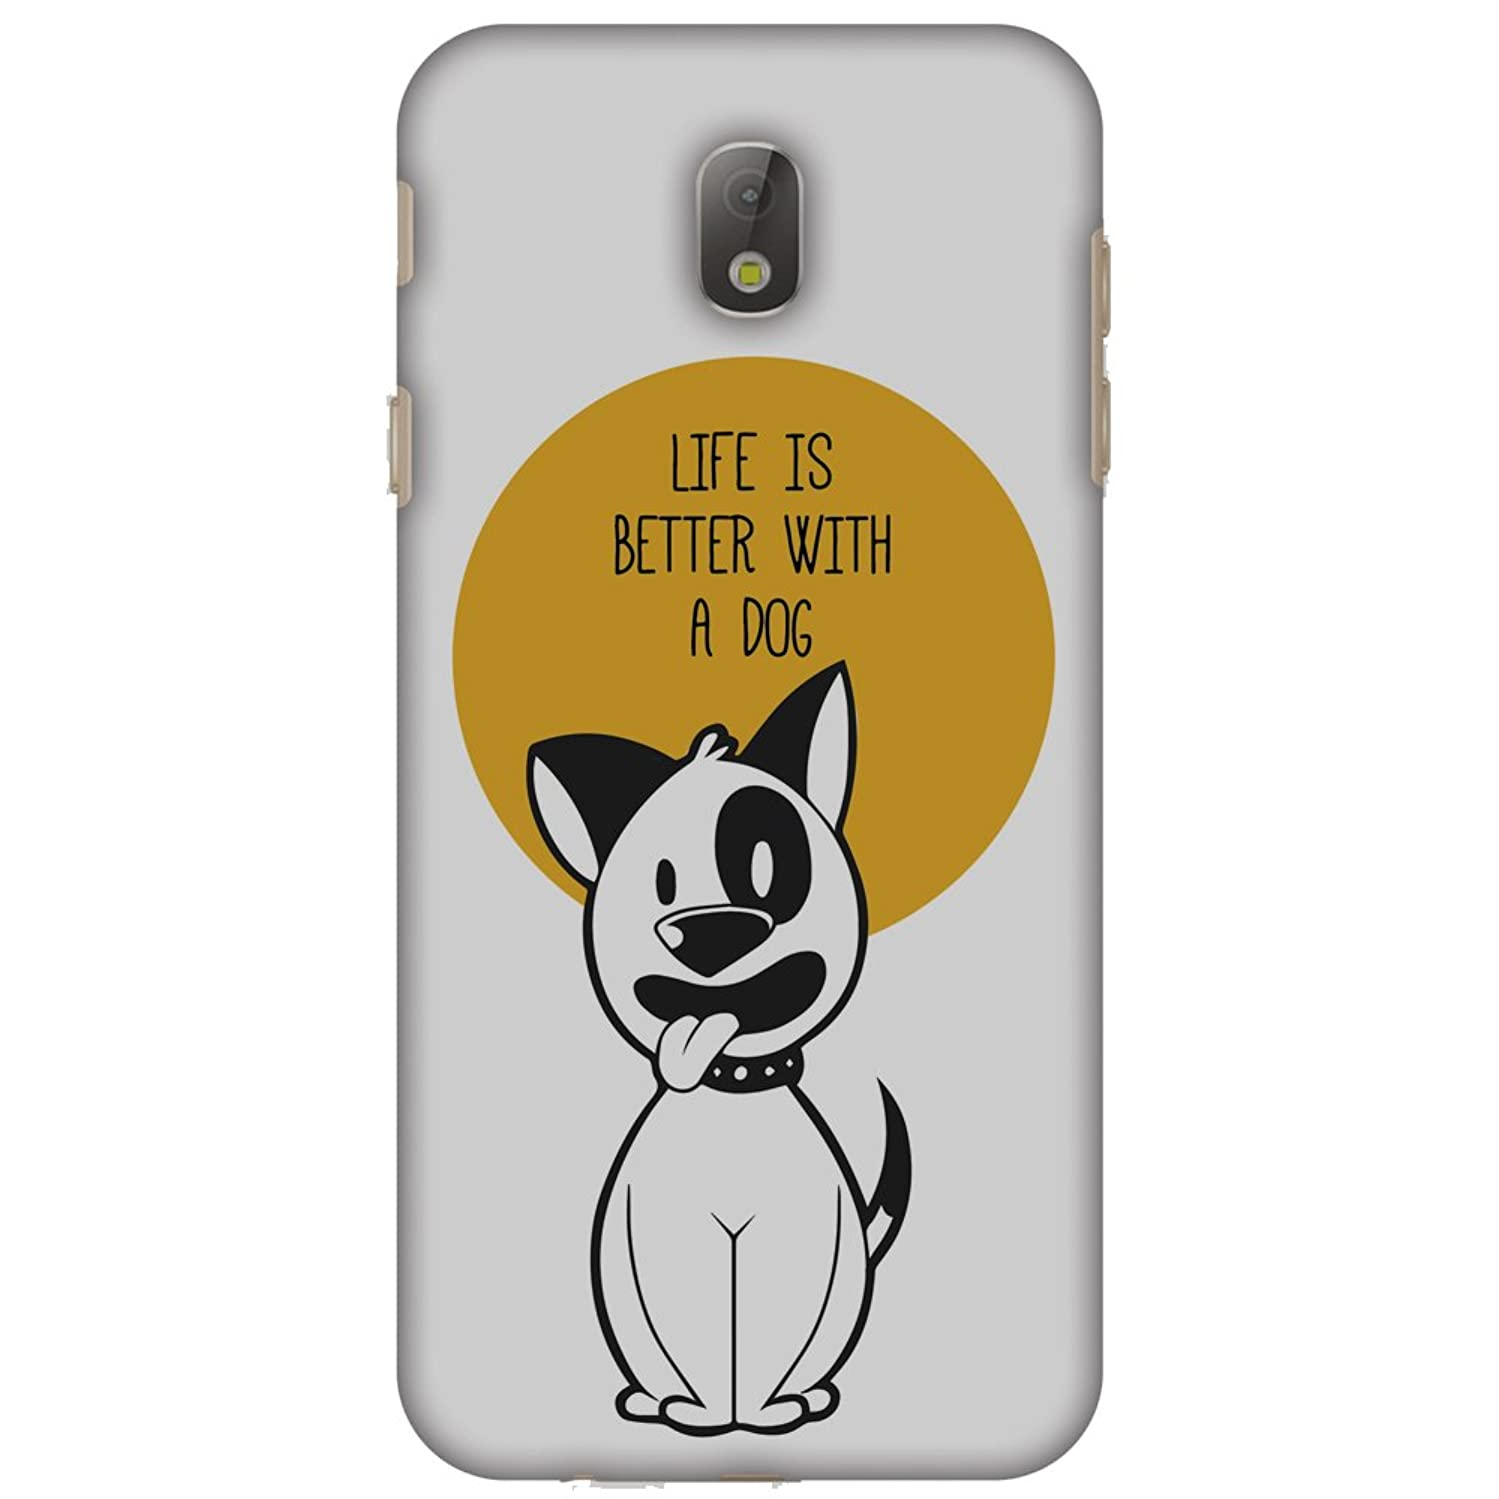 AMZER Slim Fit Handcrafted Designer Printed Hard Shell Case Back Cover Skin for Samsung Galaxy J7 Pro J730F - Life is Better with A Dog HD Color, Thin Protective Case